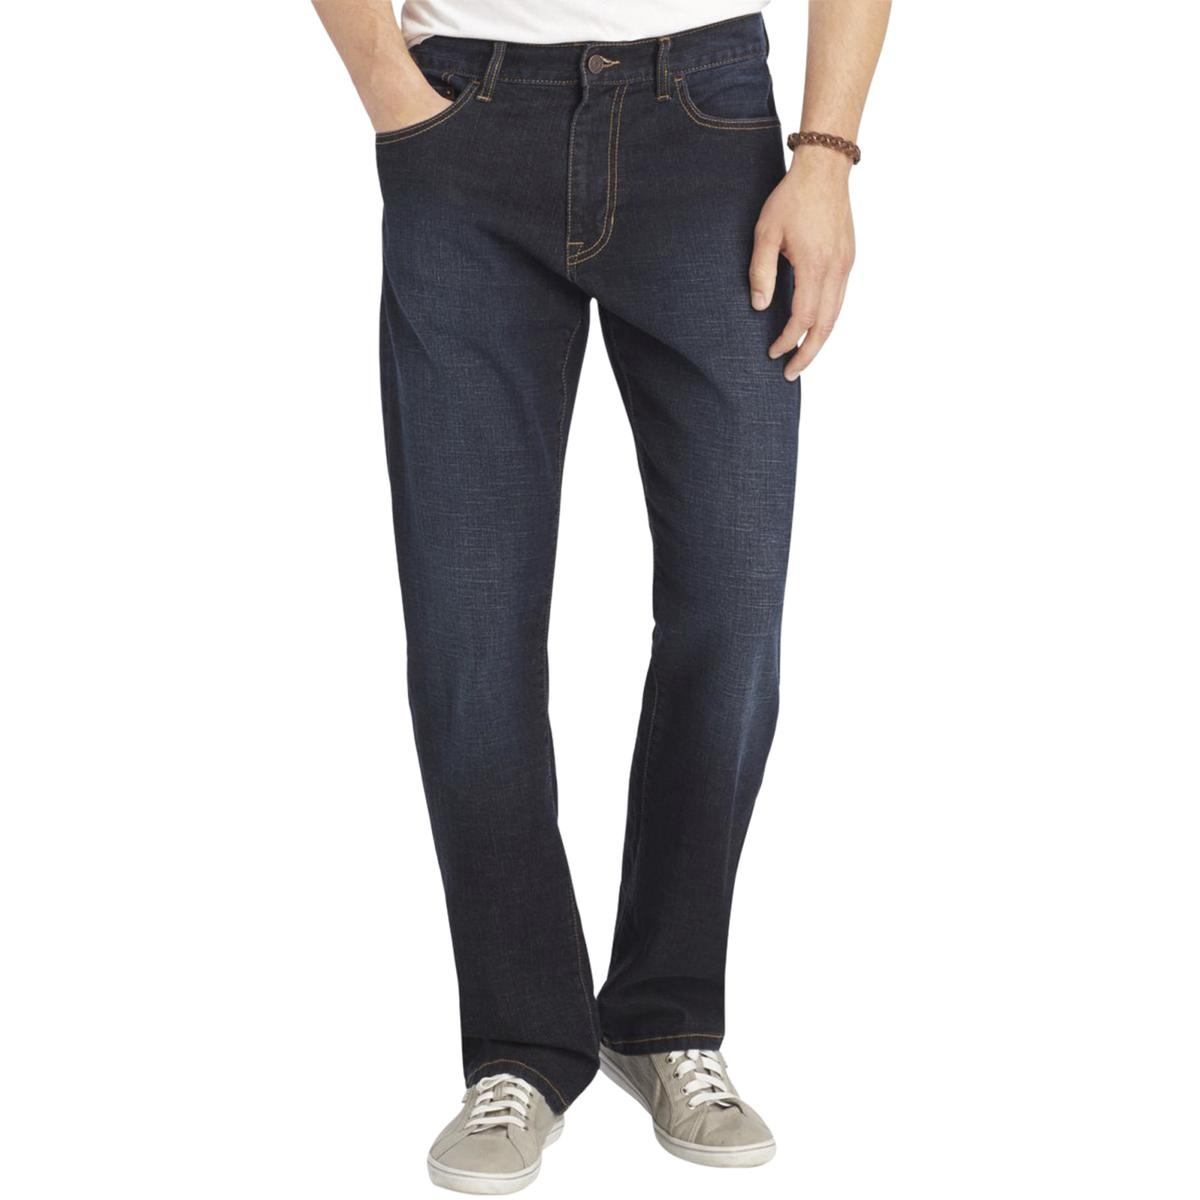 Izod Mens Classic Rise Relaxed Fit Straight Leg Jeans